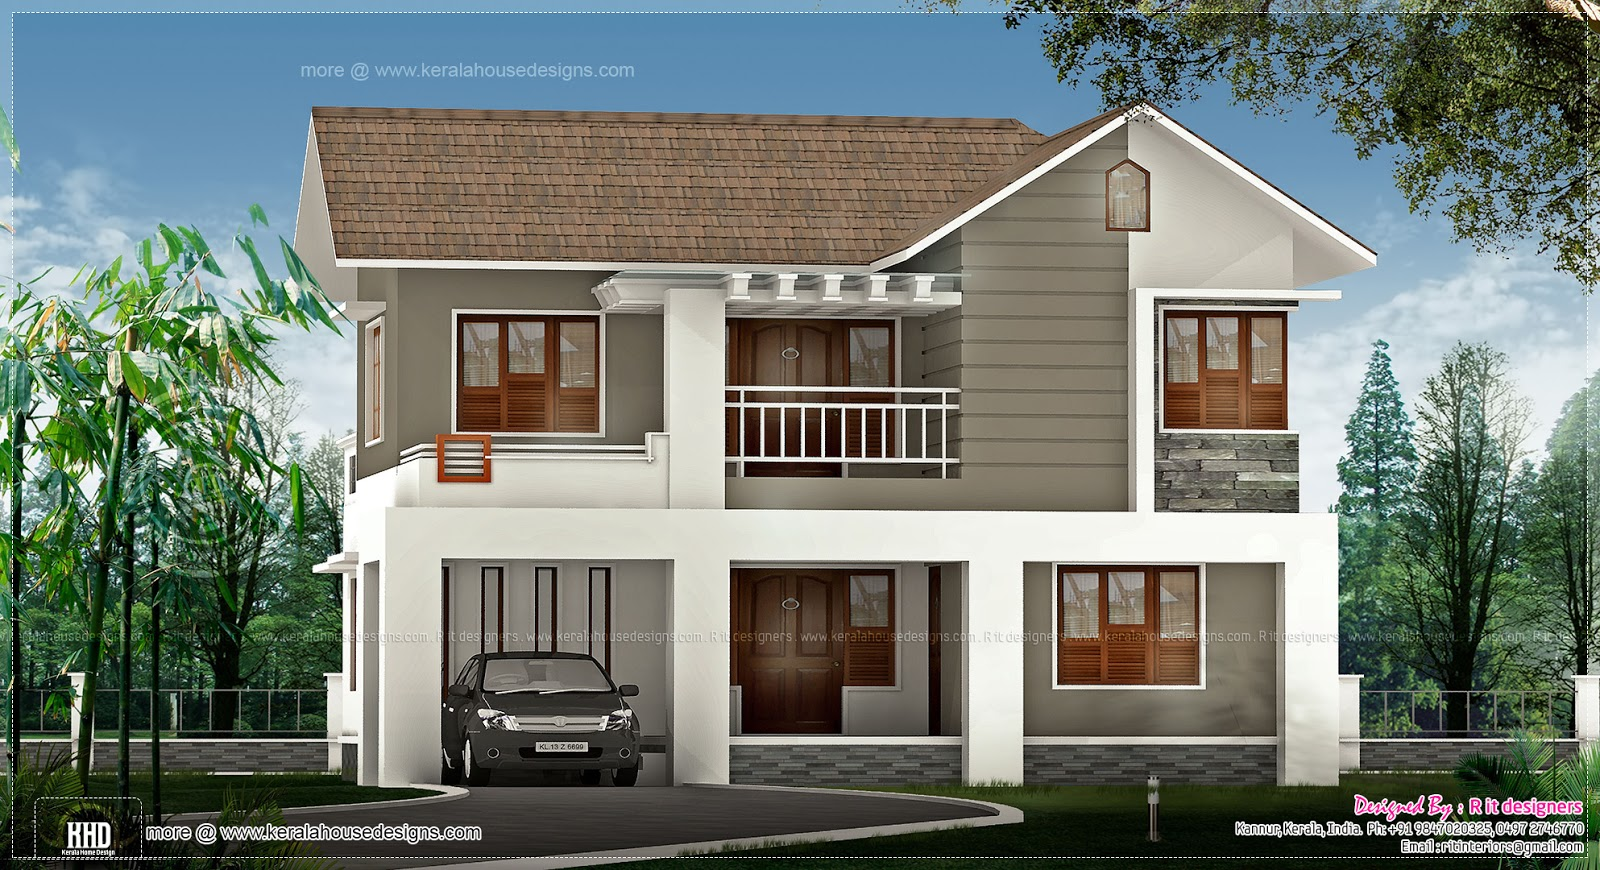 1829 sq ft home design in kannur kerala kerala home for House plans in kerala with estimate